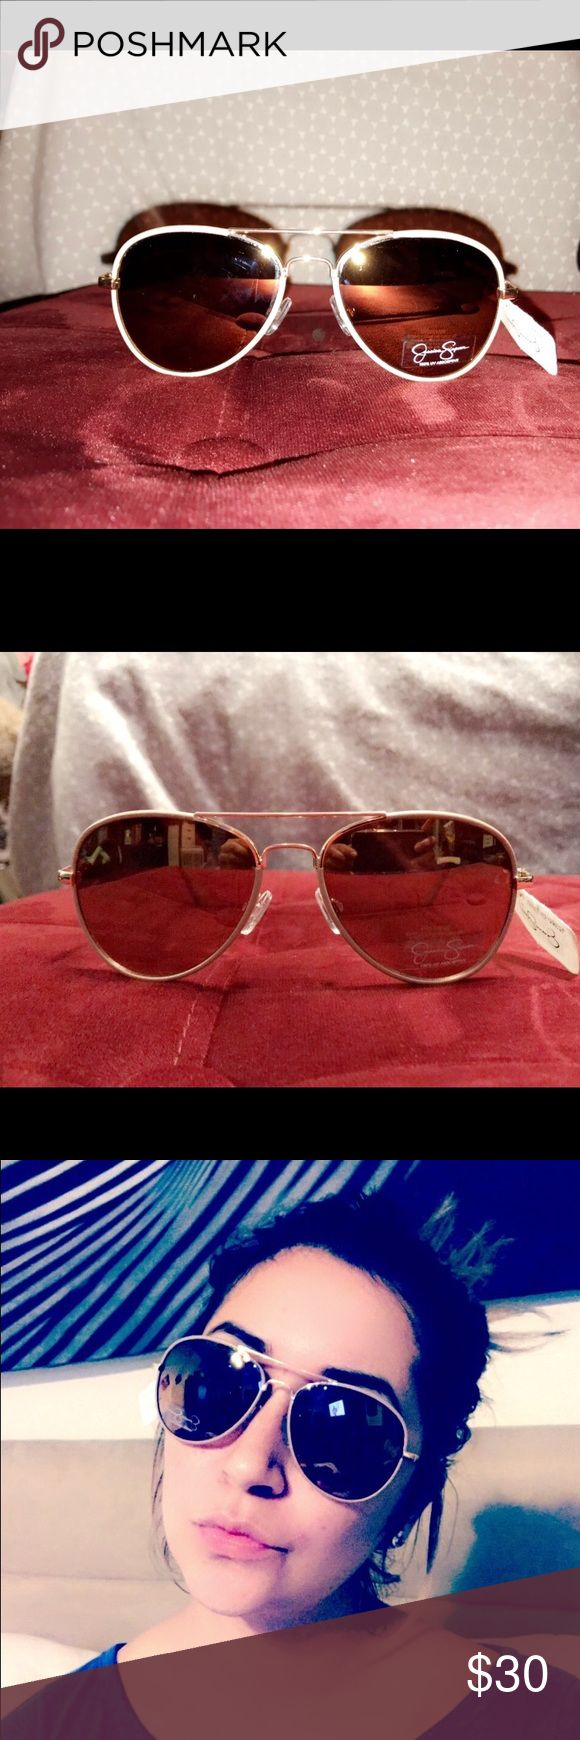 Jessica Simpson sun glasses Tags still attached they are in great condition very cute spring is just around the corner ! Perfect for the sun Jessica Simpson Accessories Glasses